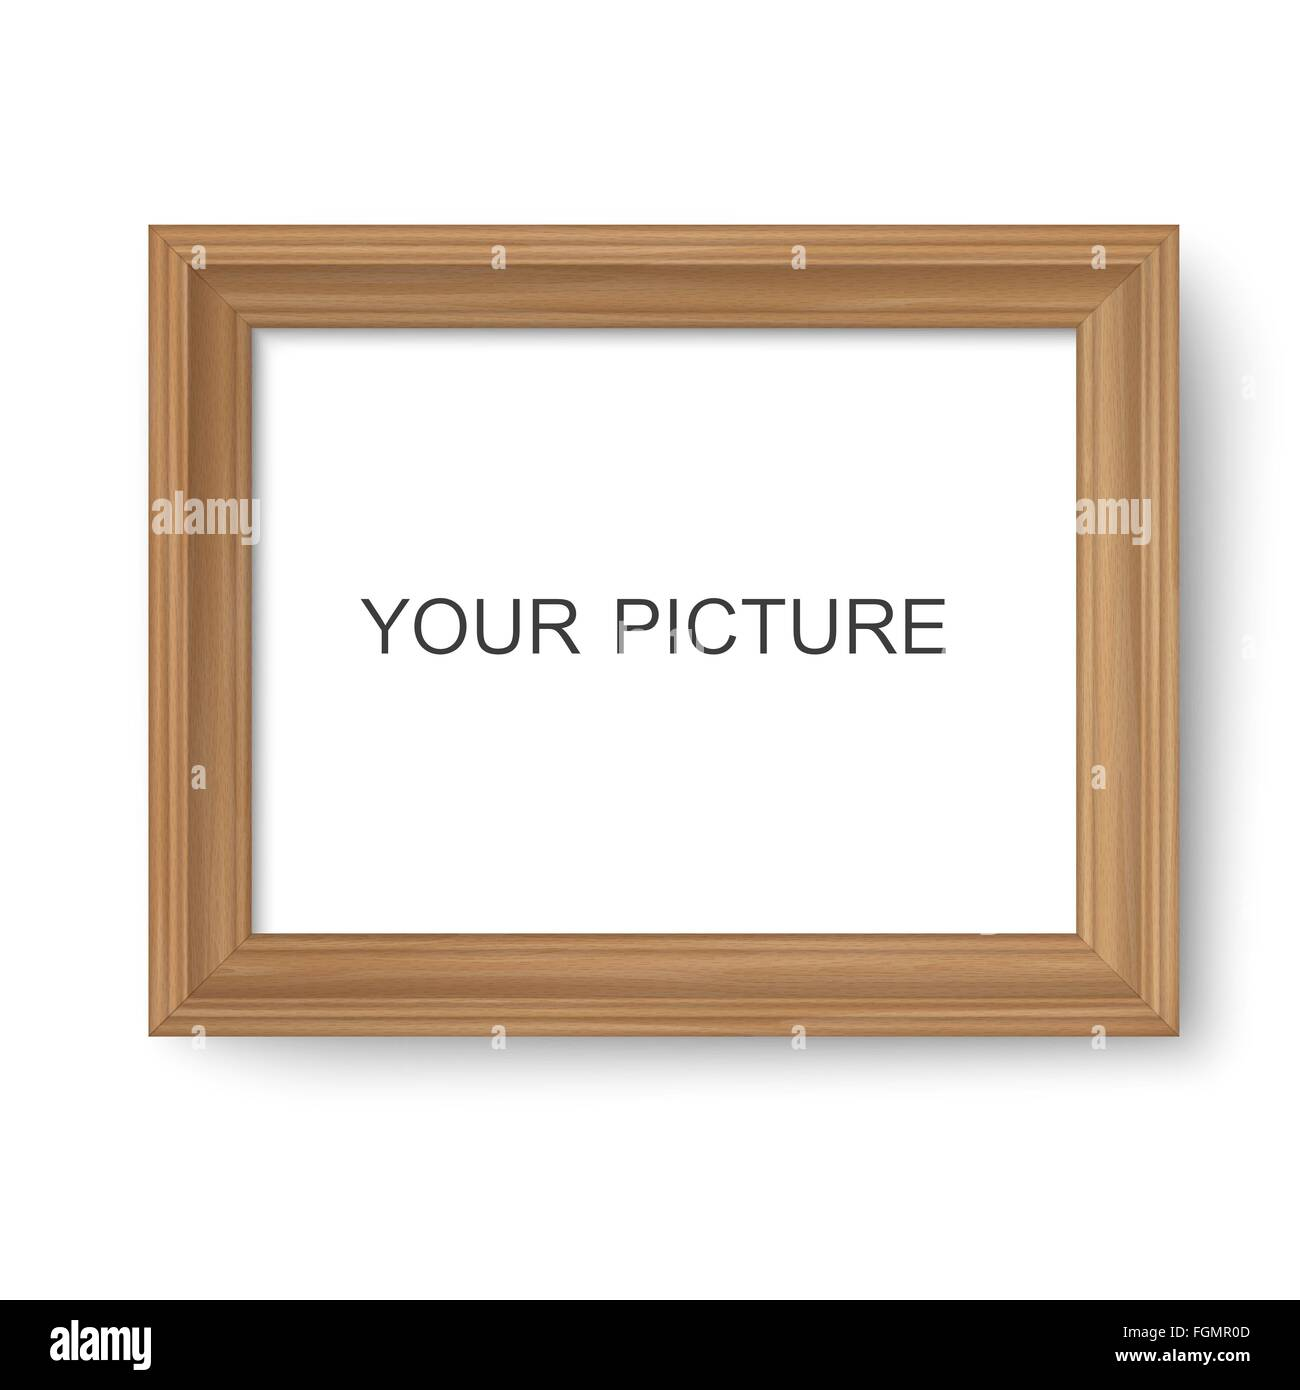 Wooden frame - Stock Image